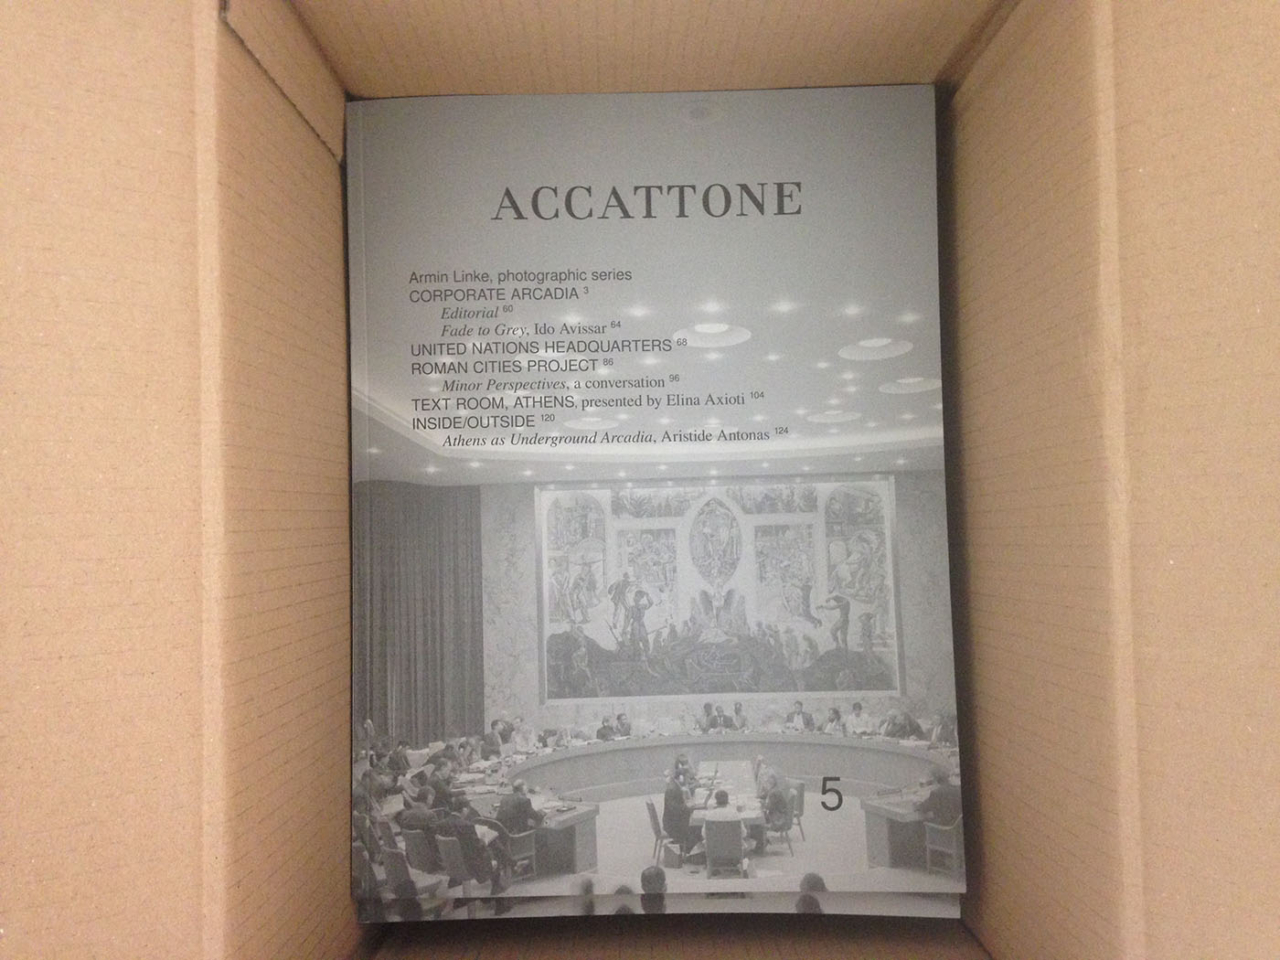 ACCATTONE ISSUE 5